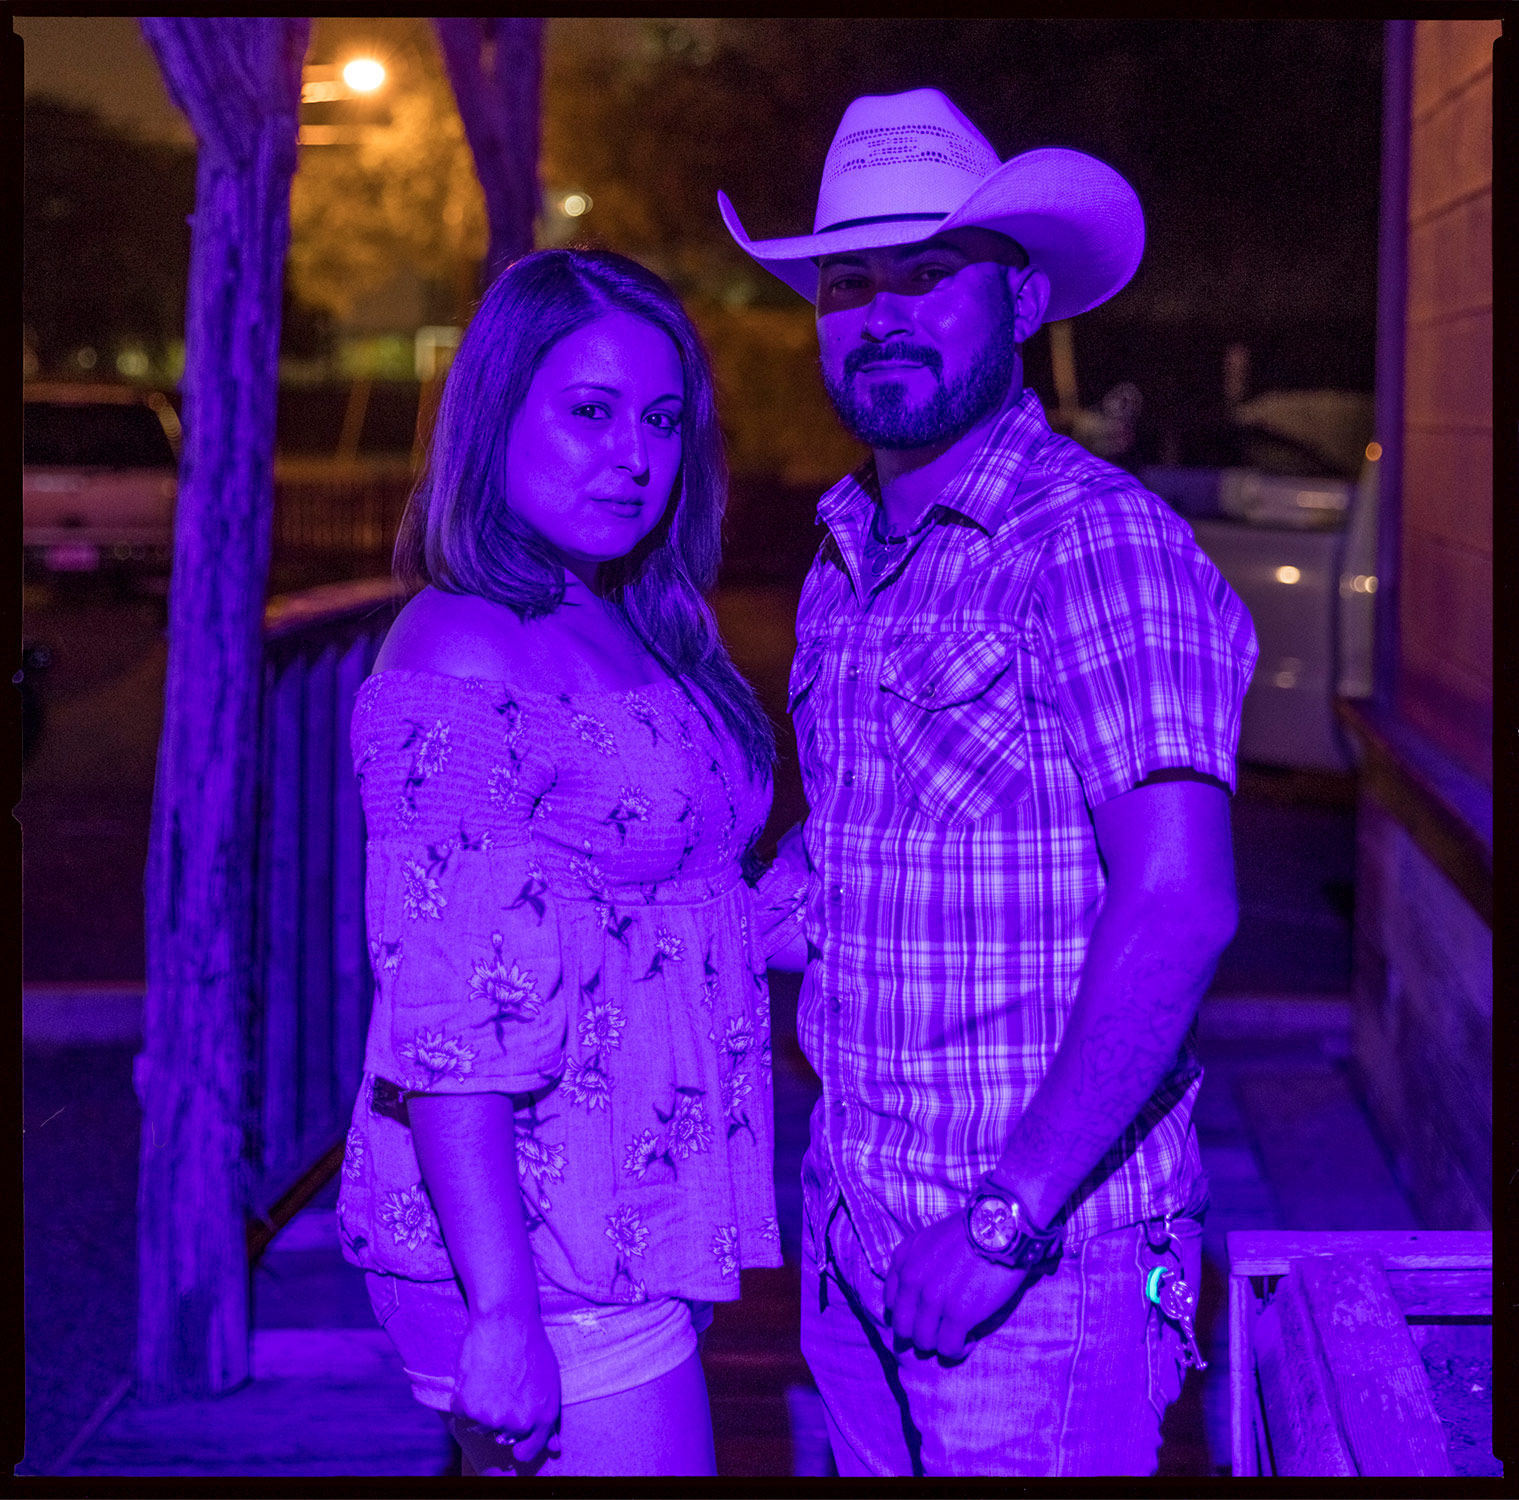 Couple in Blue Light - Edinburg, Tx.